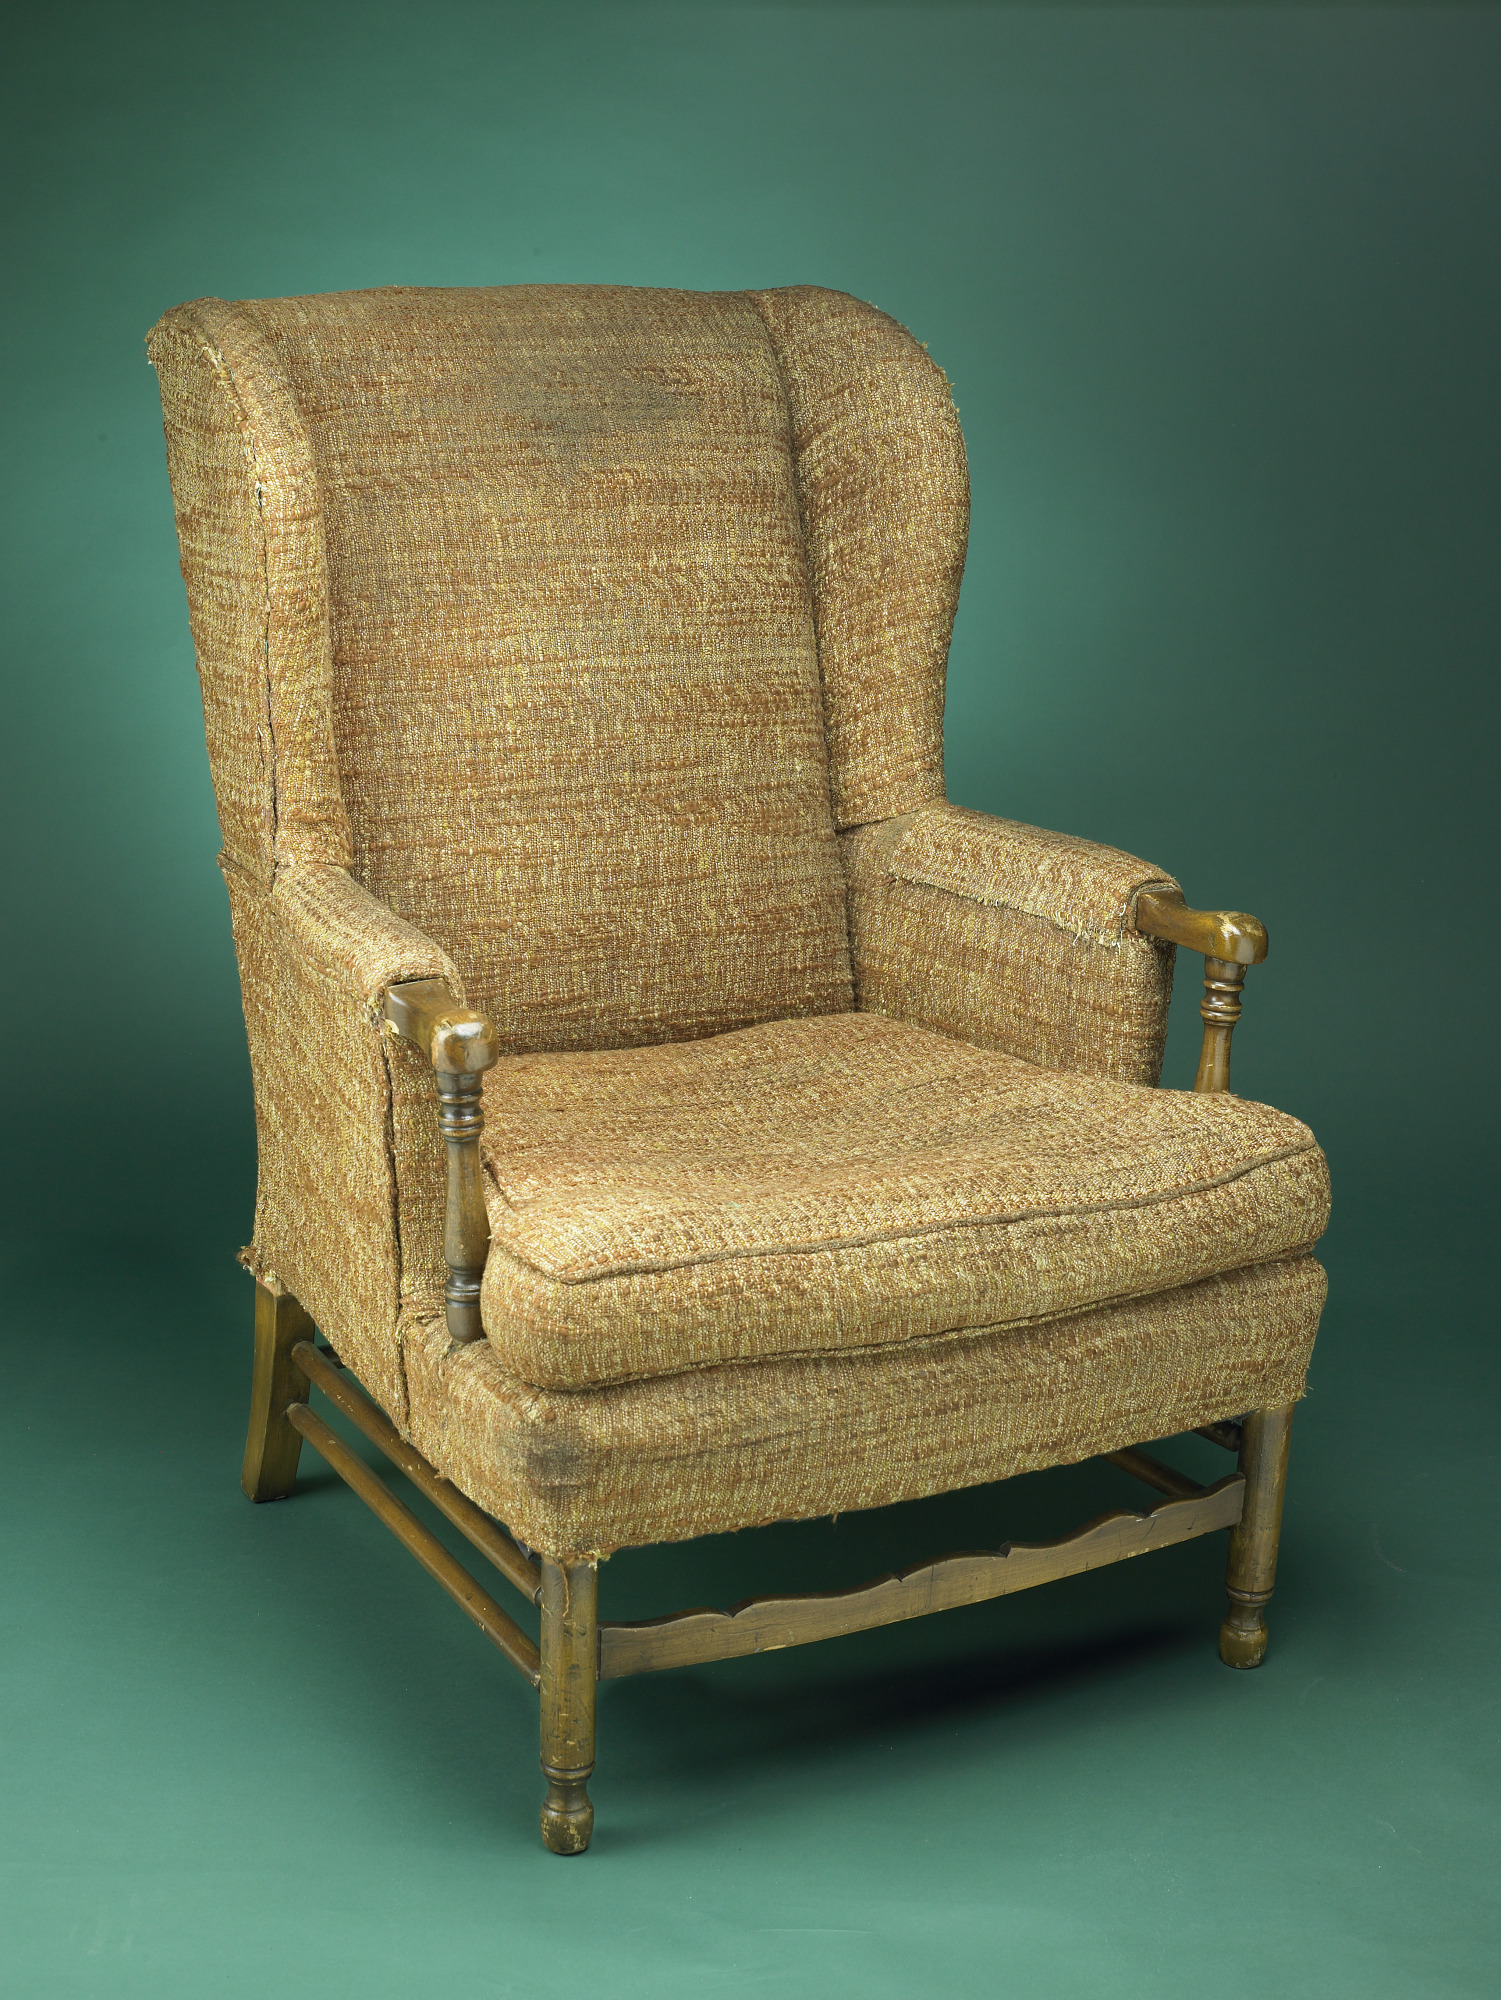 images for Archie Bunker's Chair from <i>All in the Family</i>